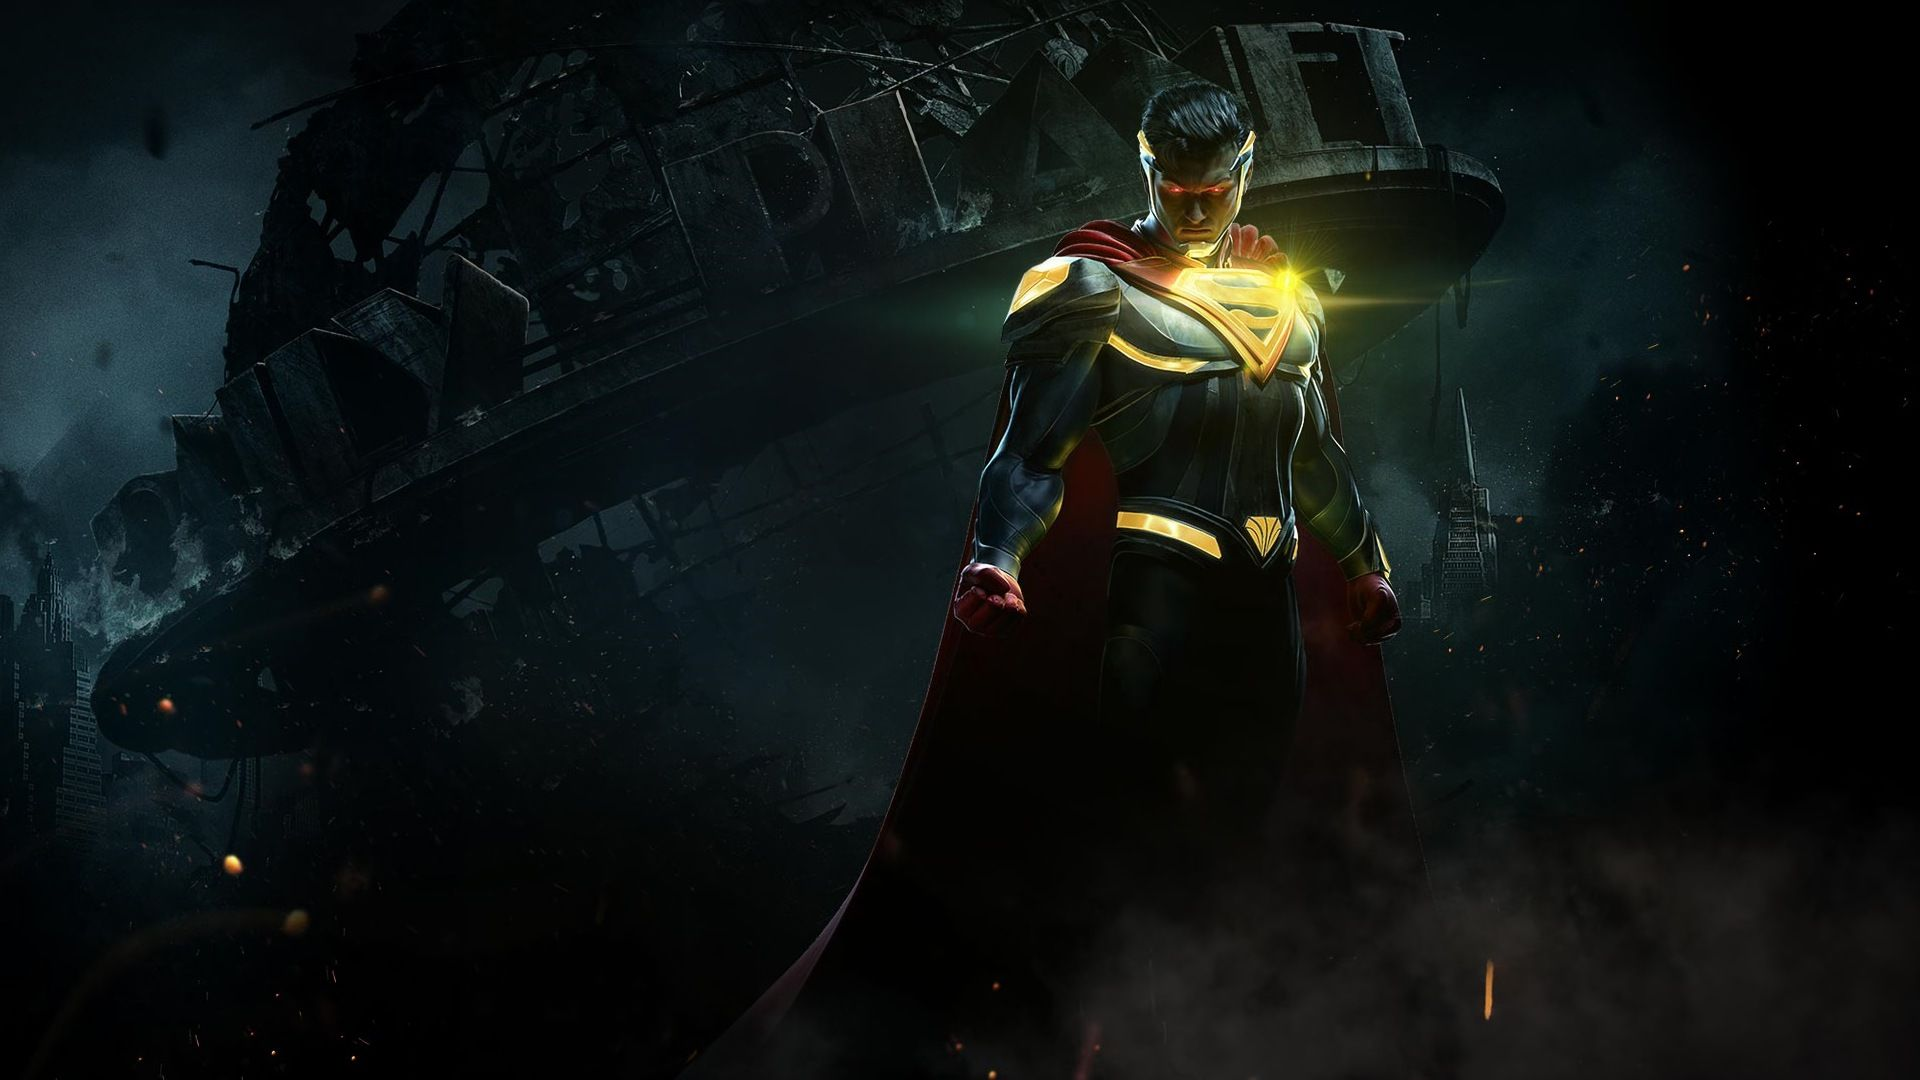 Injustice 2 Superman Hd Games 4k Wallpapers Images: Cool Superman Injustice 2 1920x1080